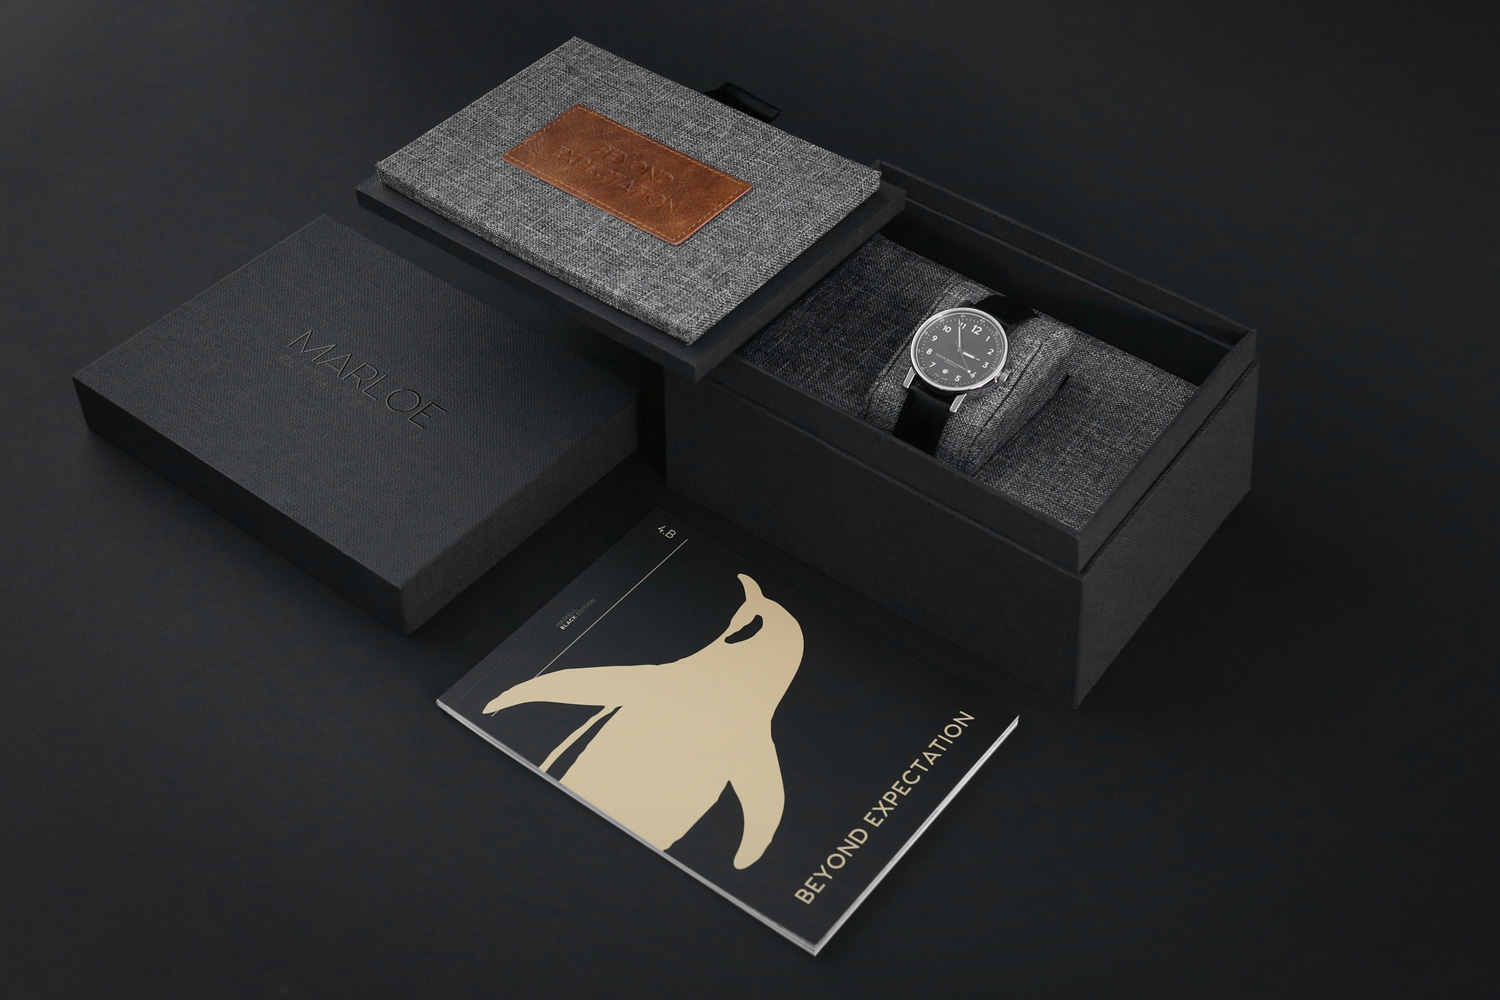 Progress Packaging Production Manufacture Luxury Watch Box Timepiece Print Retail Fsc Approved Recyclable Eco Friendly Creative Bespoke